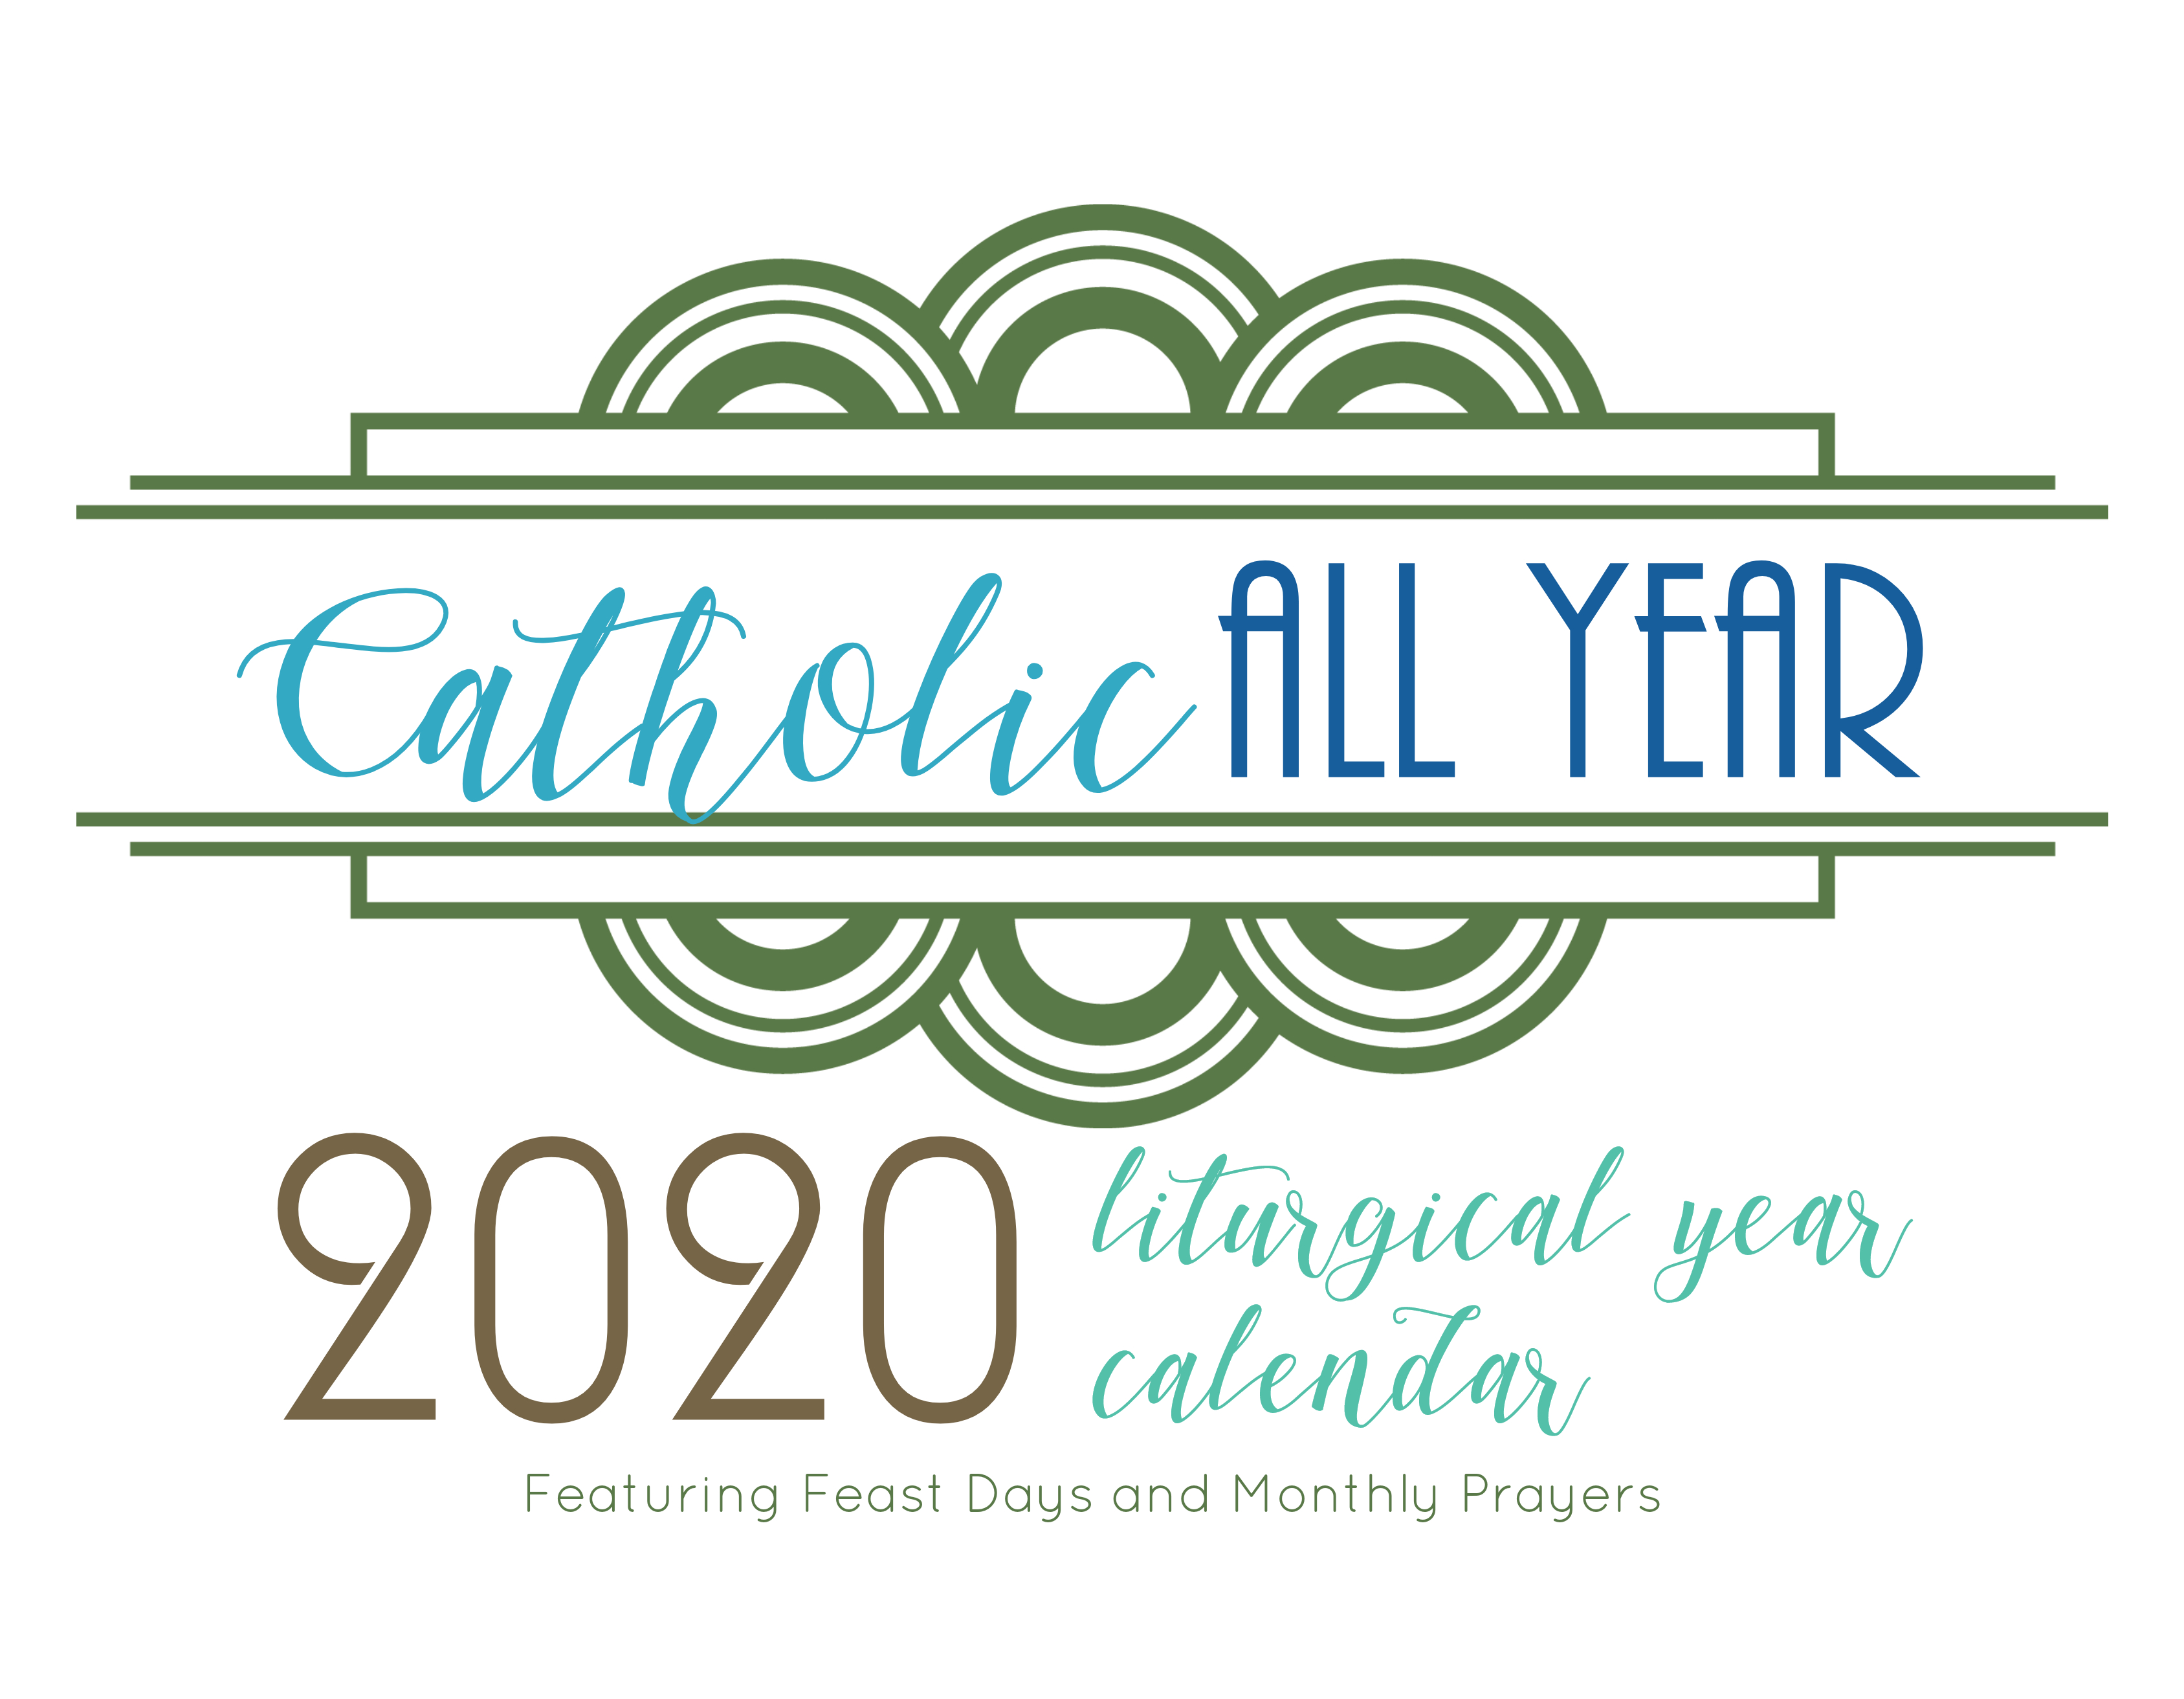 Catholic All Year 2020 Monthly Prayers Liturgical Year Calendar *digital  Download* for Printable Monthly Liiturgical Calendar 2020